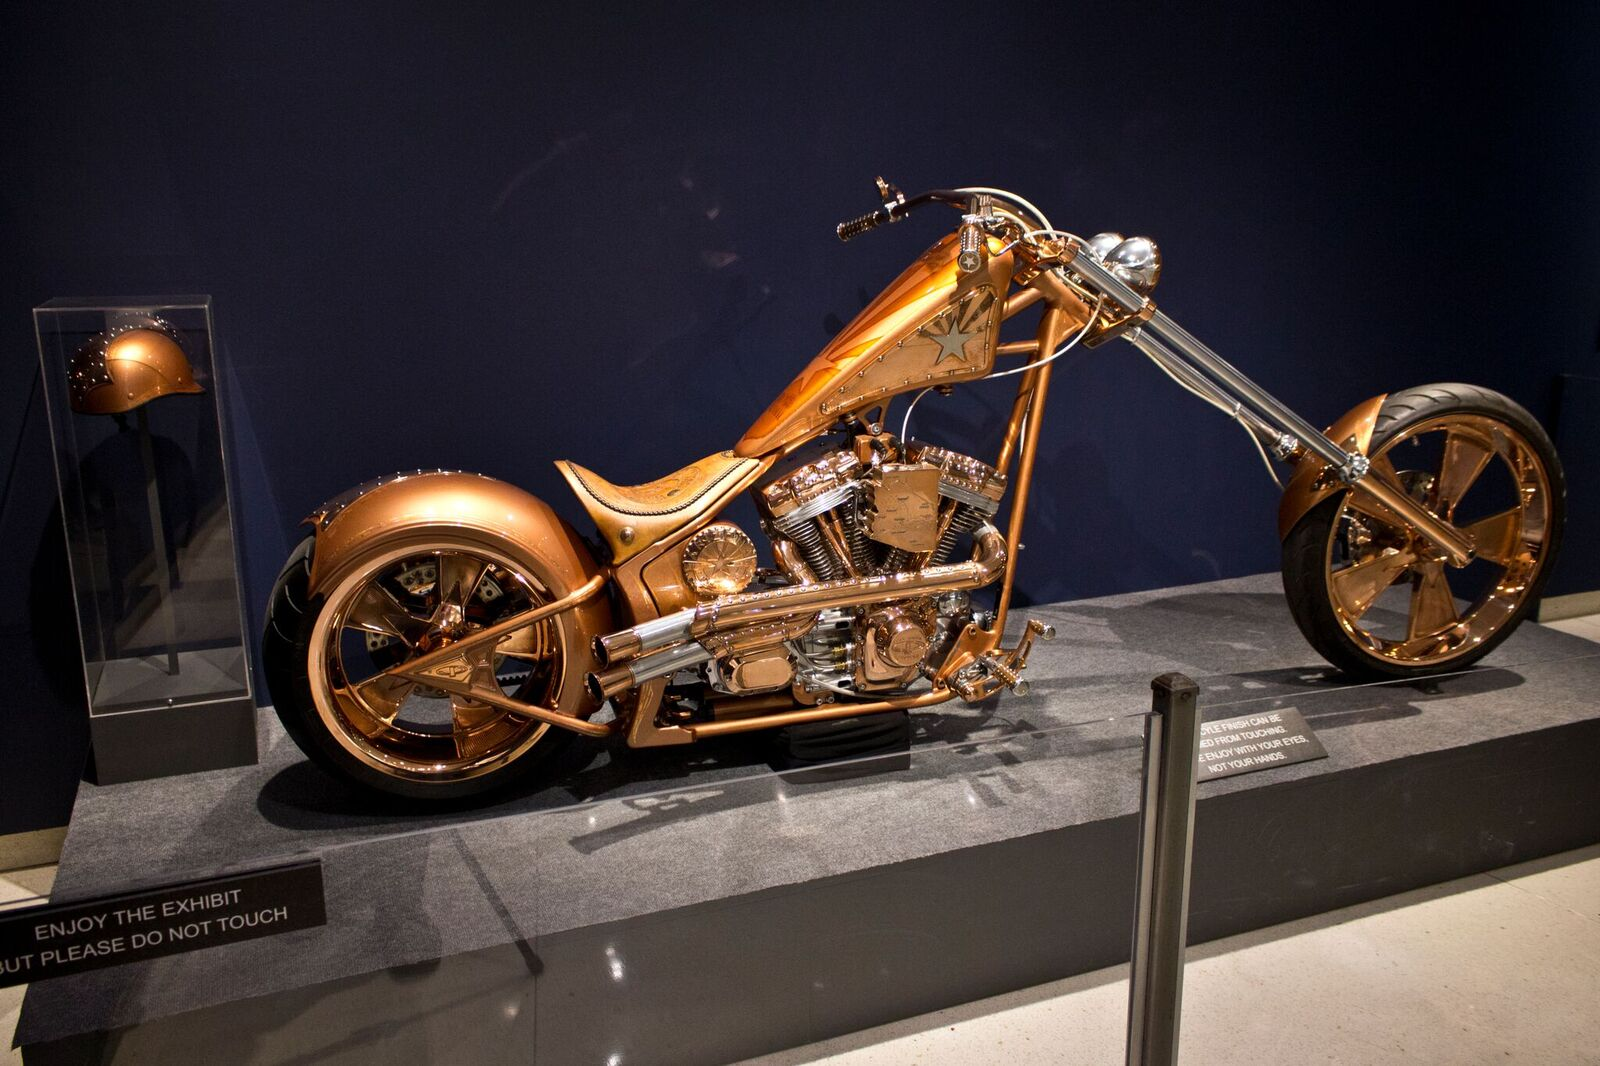 Paul Yaffe Featured Builder for Art of the Ride Exhibit at Phoenix Airport Museum